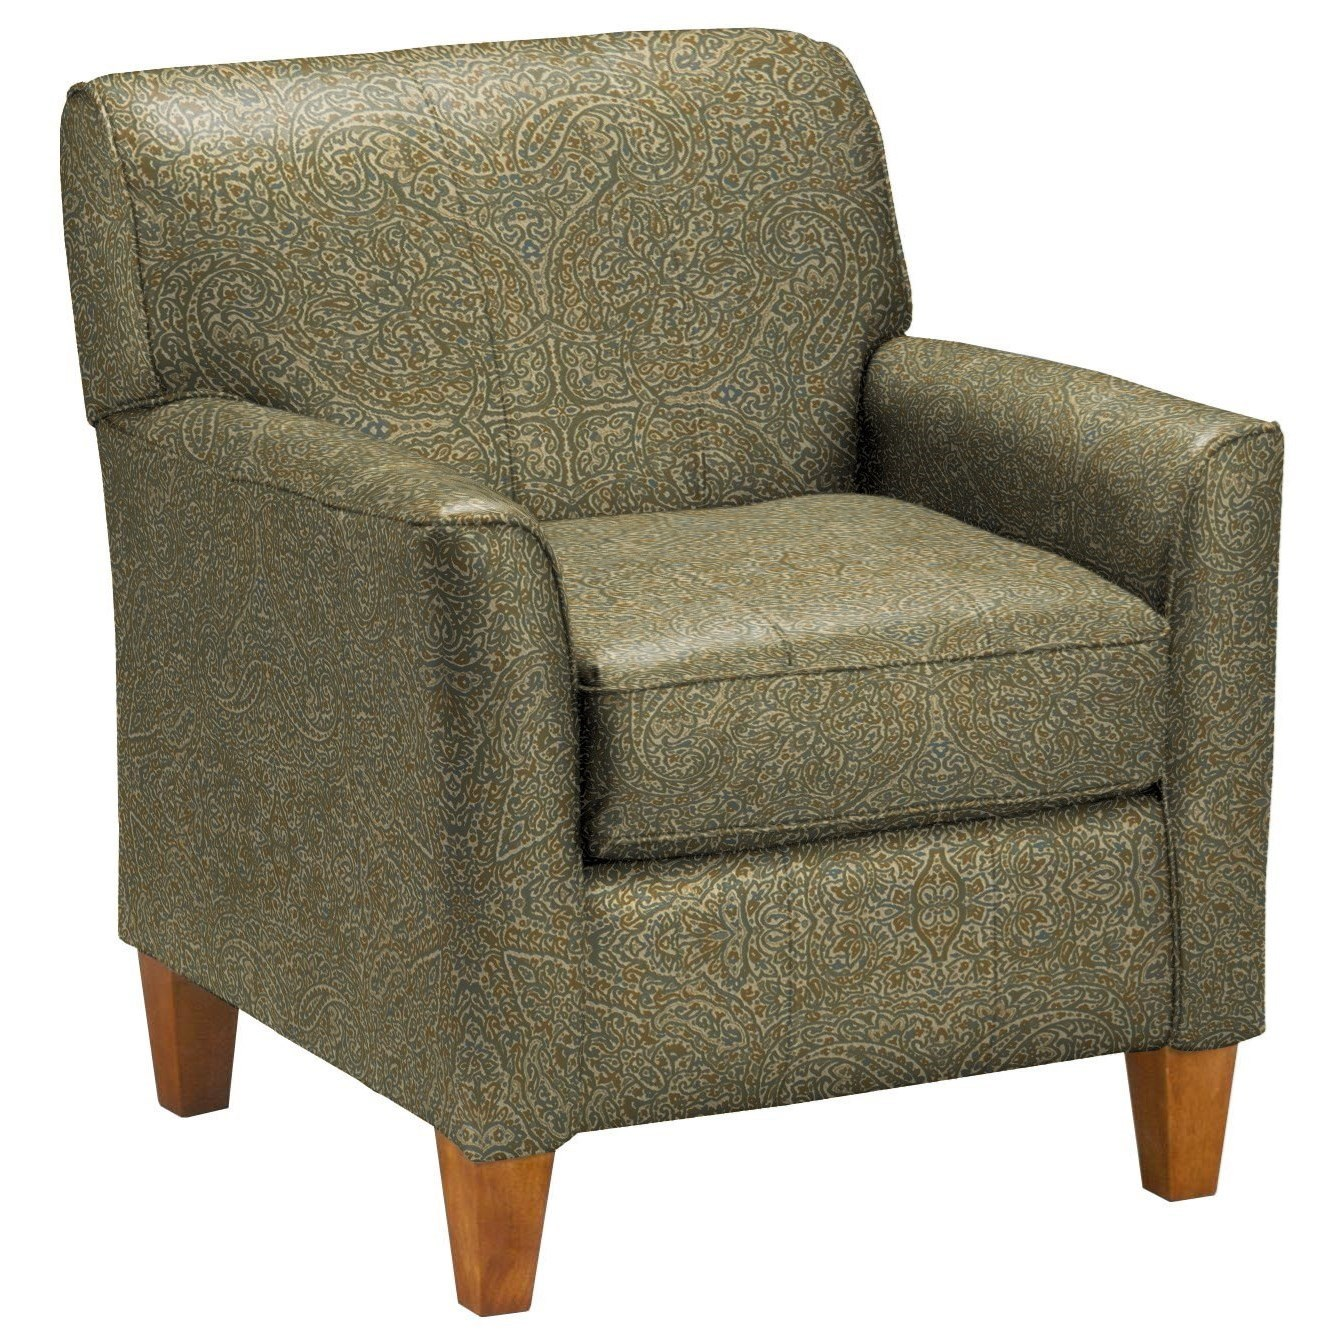 Best Home Furnishings Chairs - Club Risa Club Chair - Item Number: -1159276652-34672